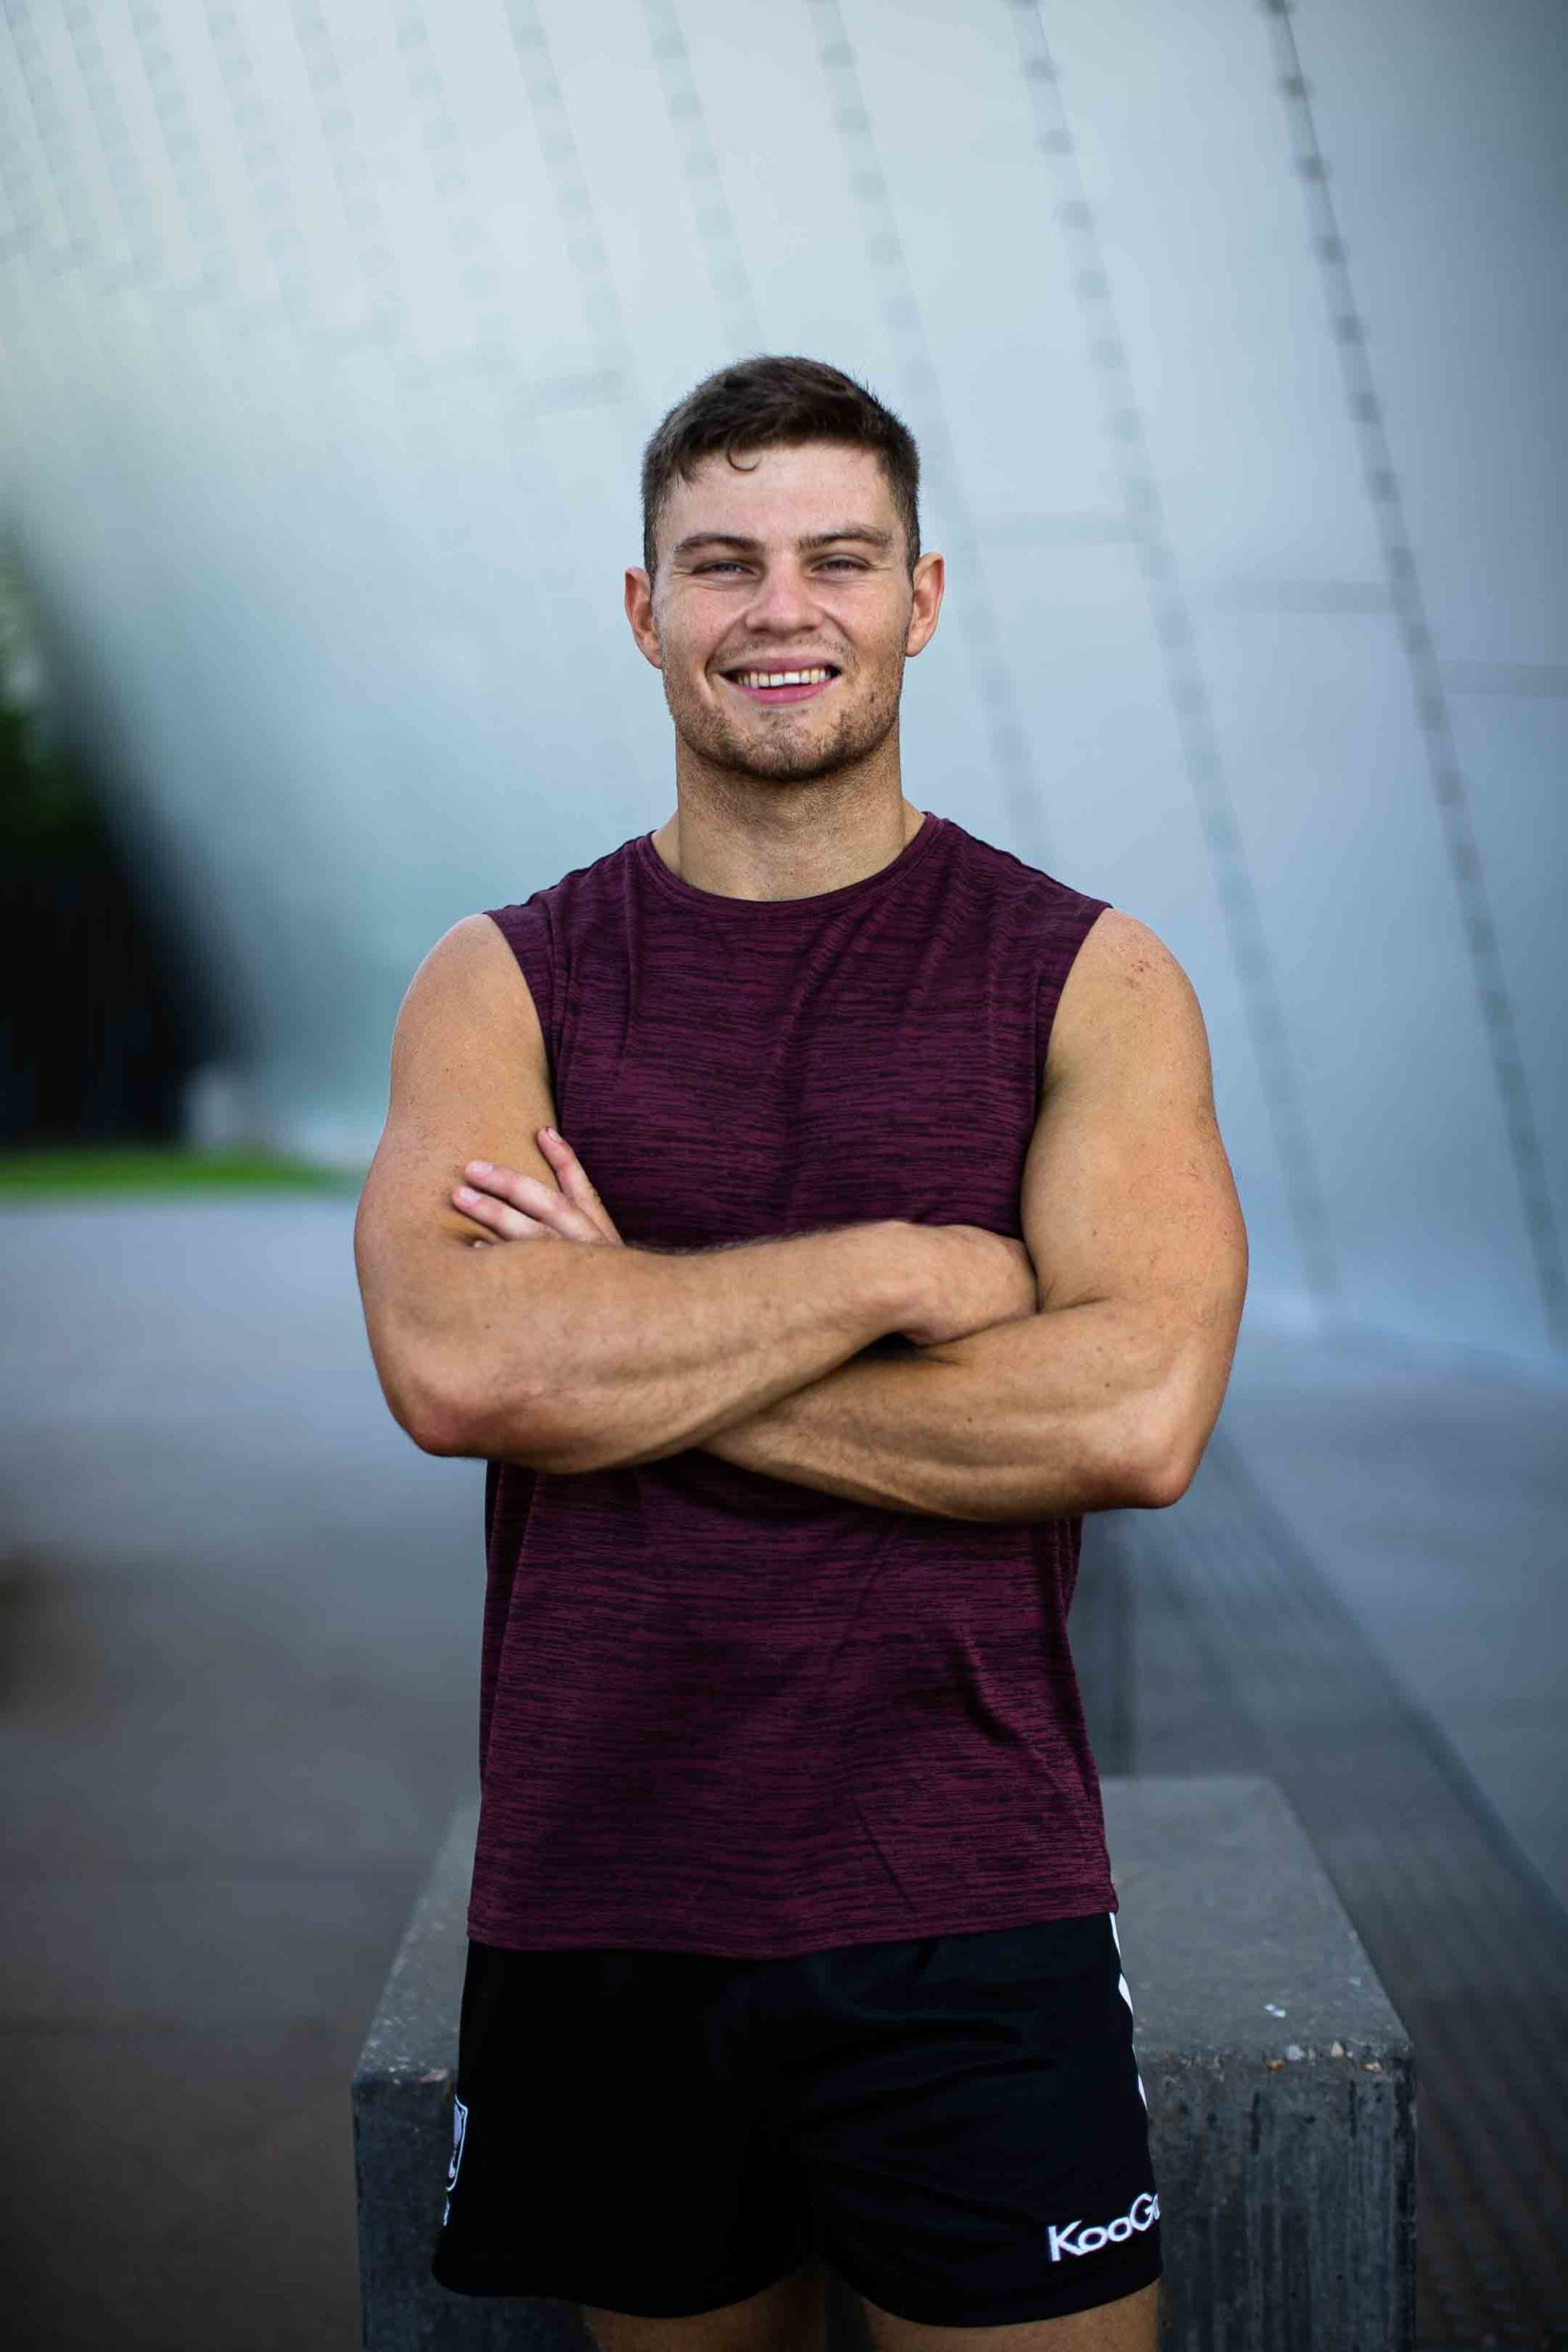 Sean crossing his arms during a fitness shoot at the Melbourne Museum